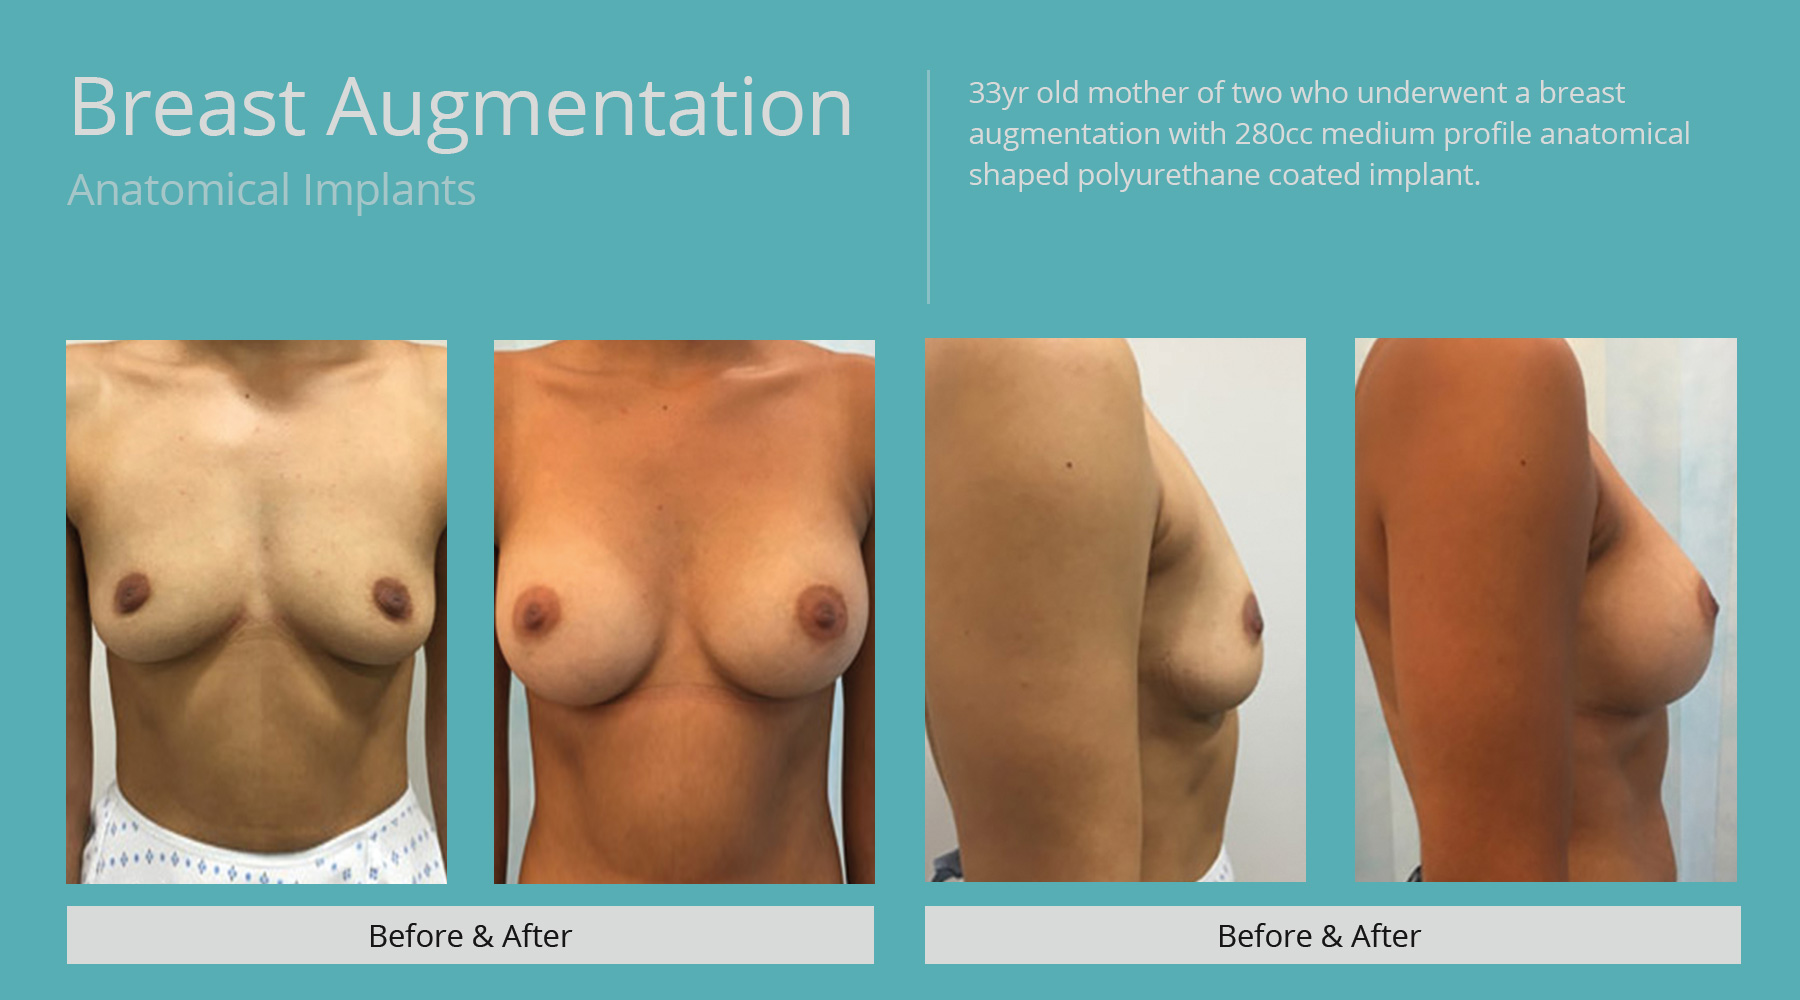 Breast-Augmentation-anatomical-14